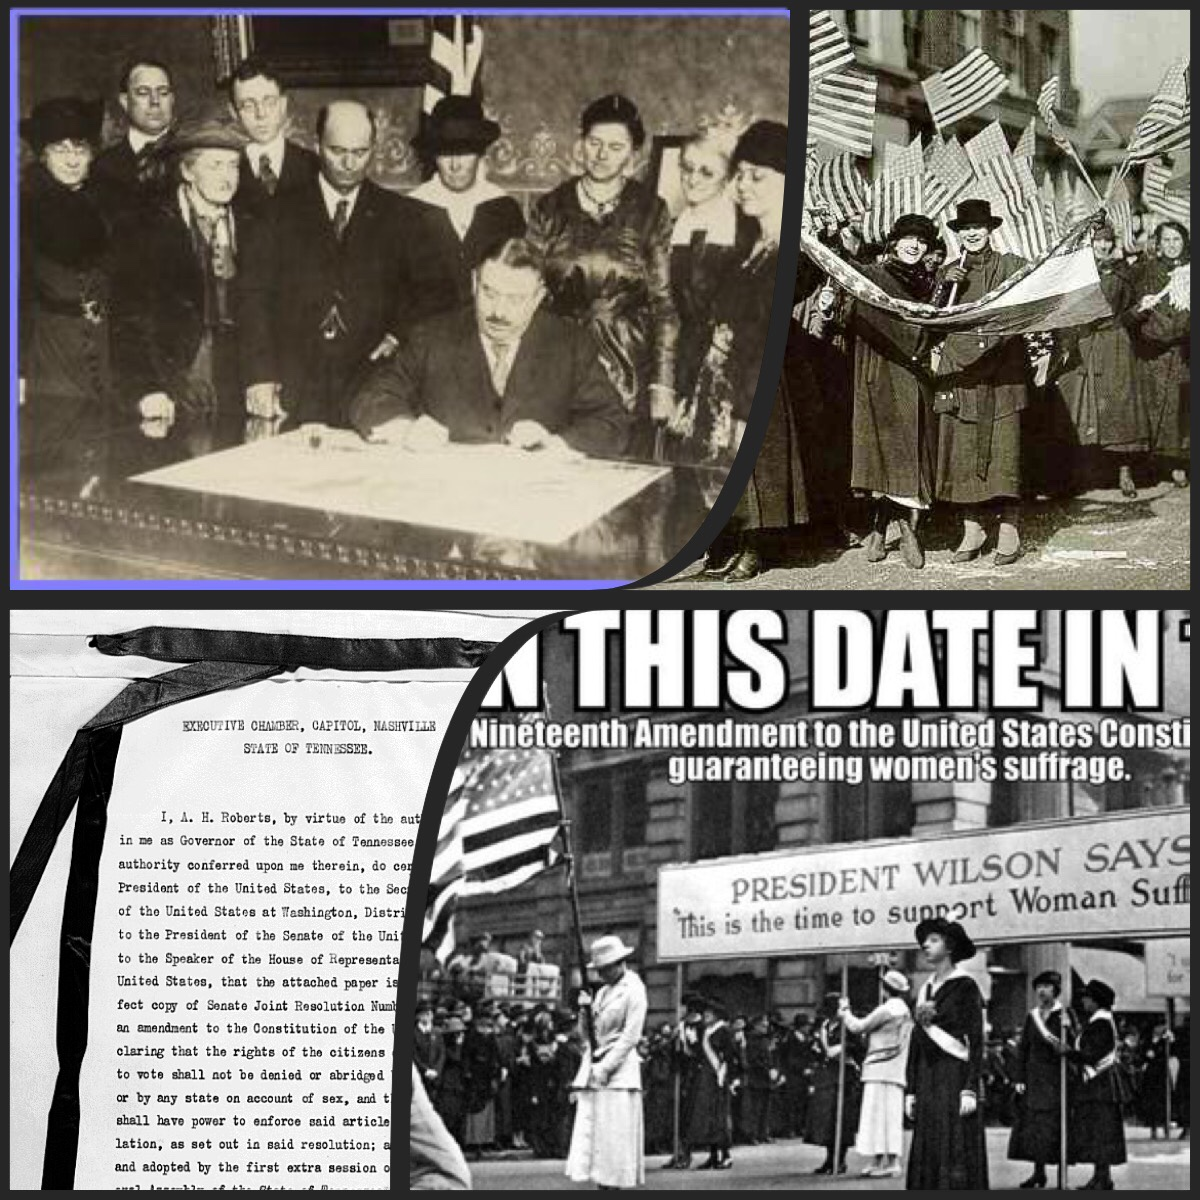 1920 The 19th Amendment Gives Women Right To Vote